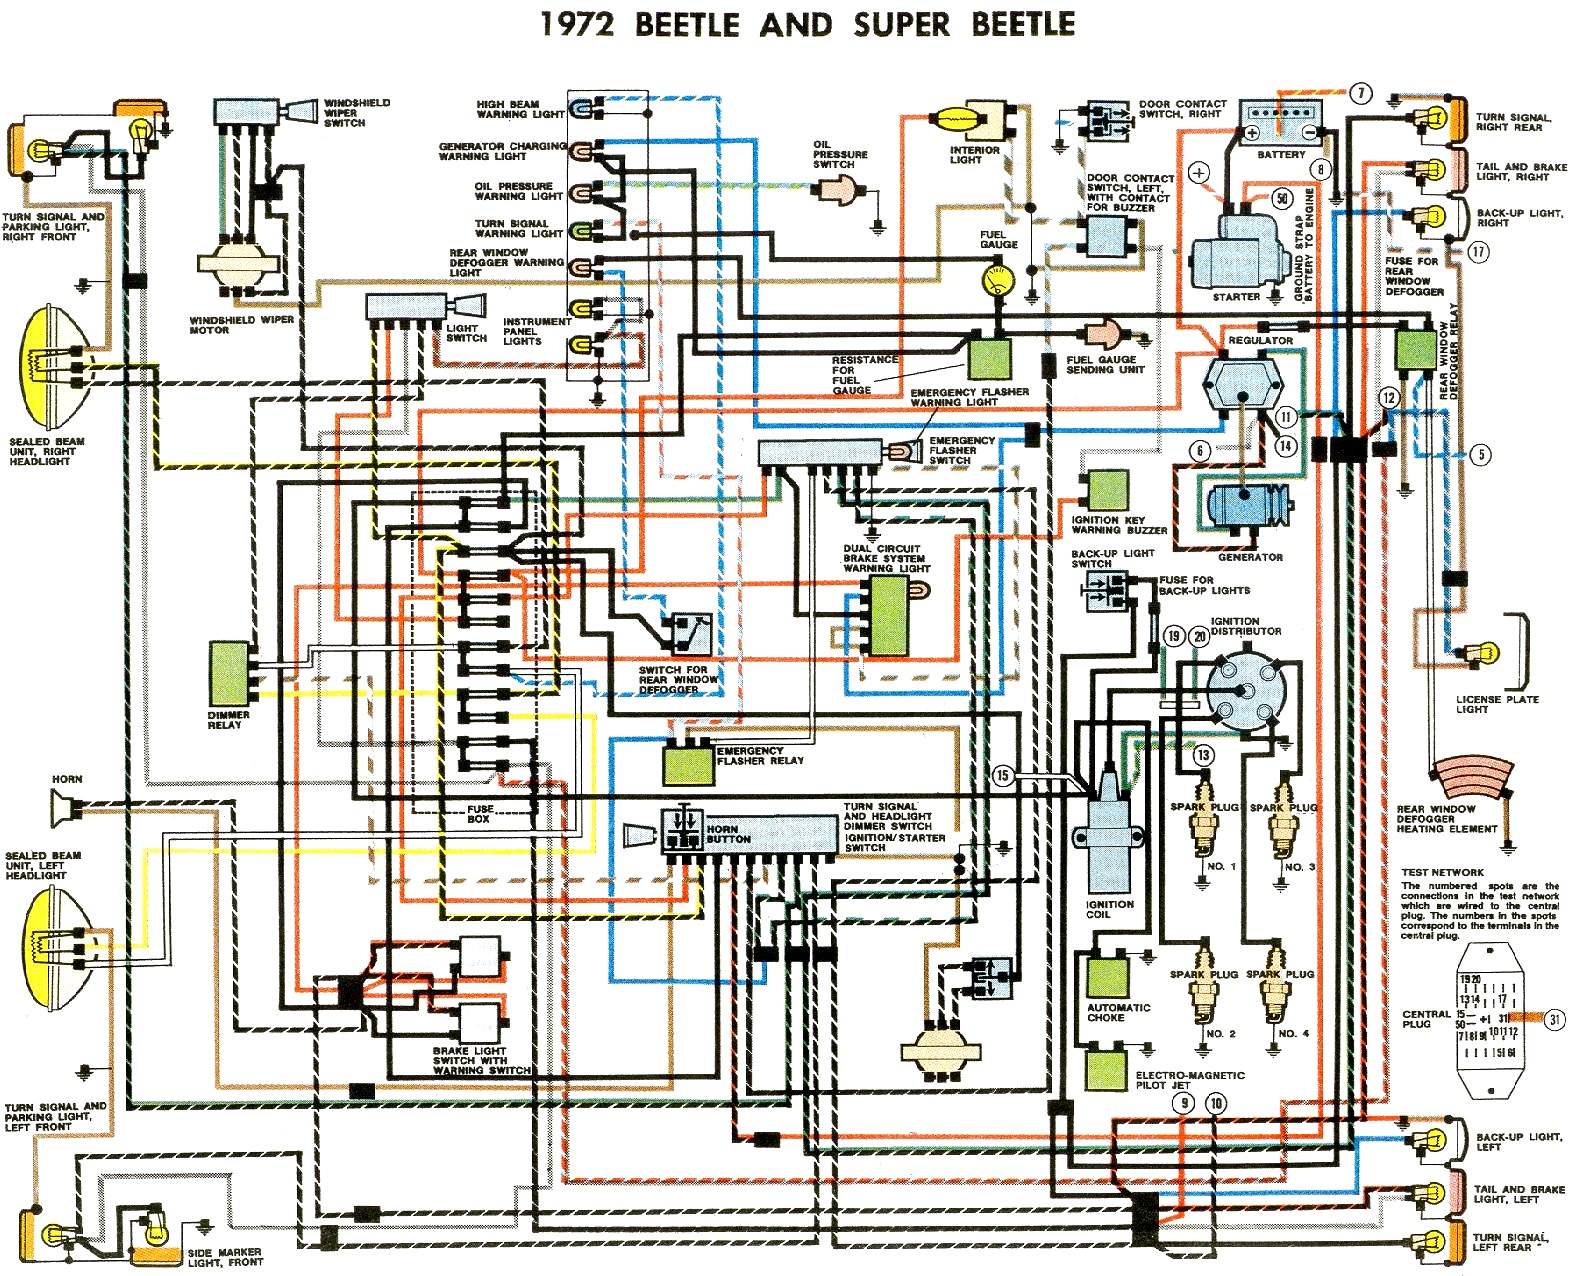 bug_72 1972 beetle wiring diagram thegoldenbug com 1978 vw bus fuse box diagram at suagrazia.org